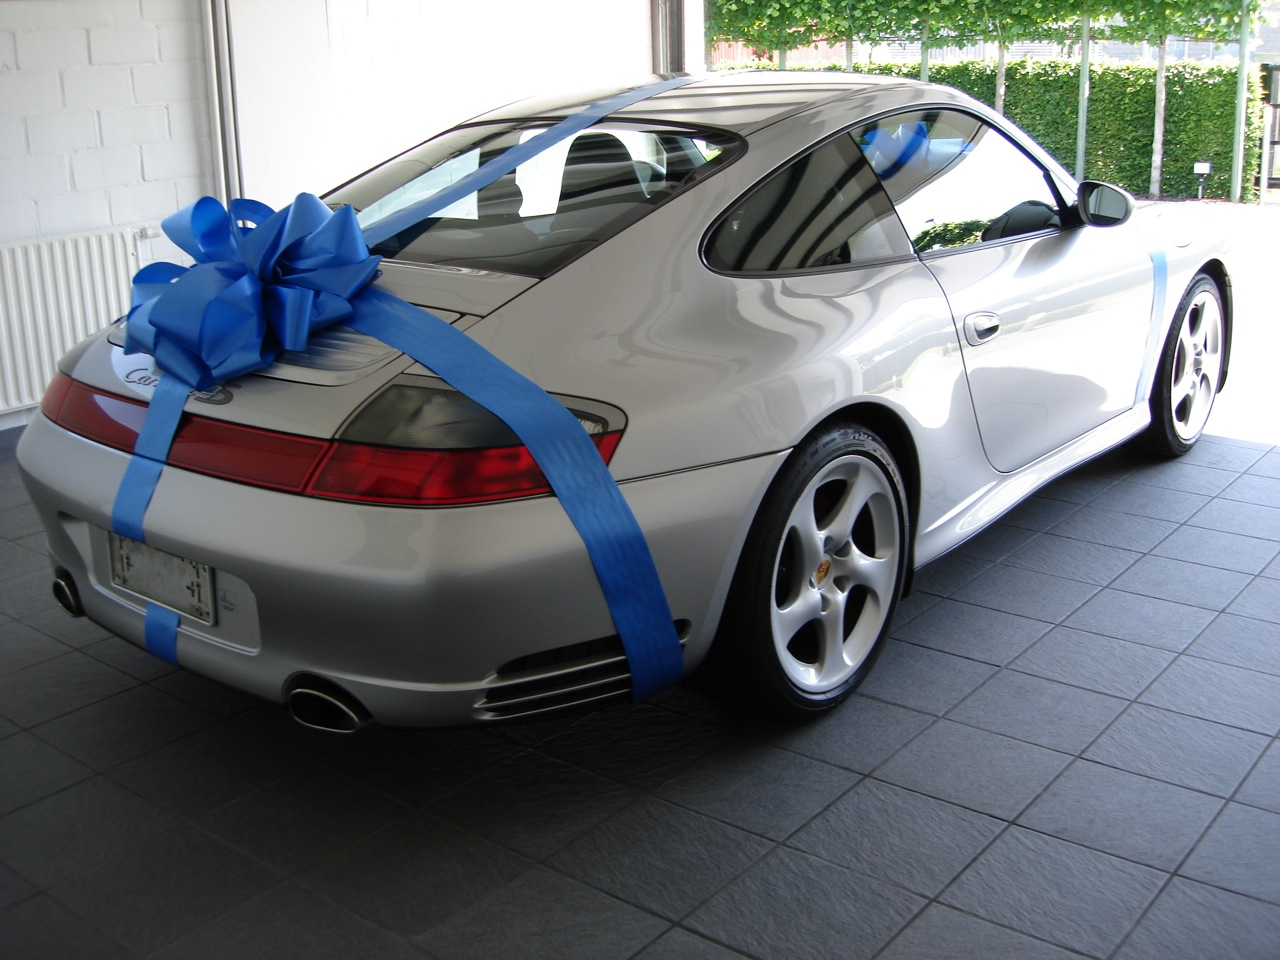 Porsche Driving School >> 10 Porsche Gift Ideas | FLATSIXES